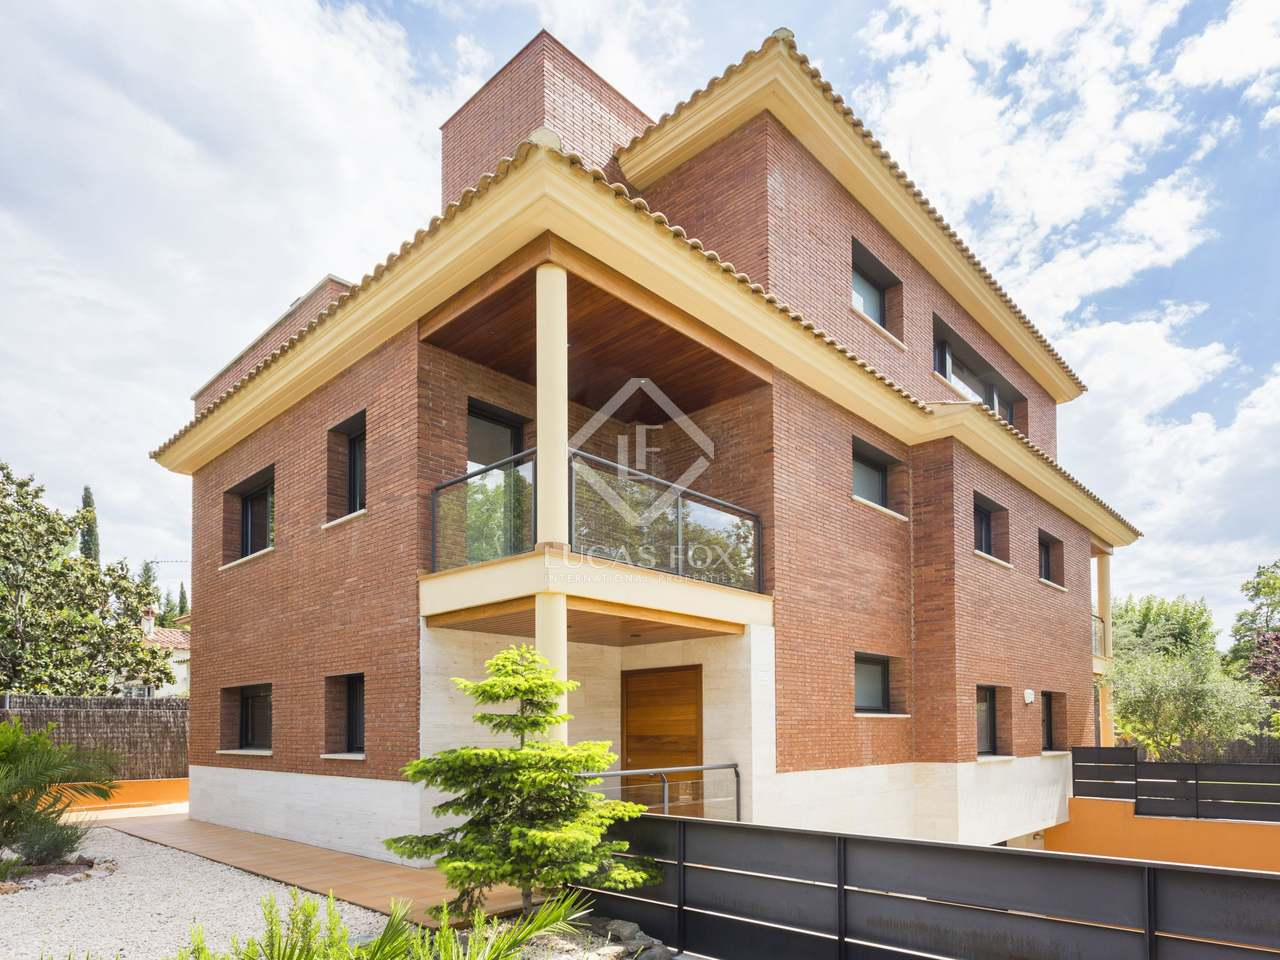 House for sale in mirasol sant cugat for Corner 4 sant cugat